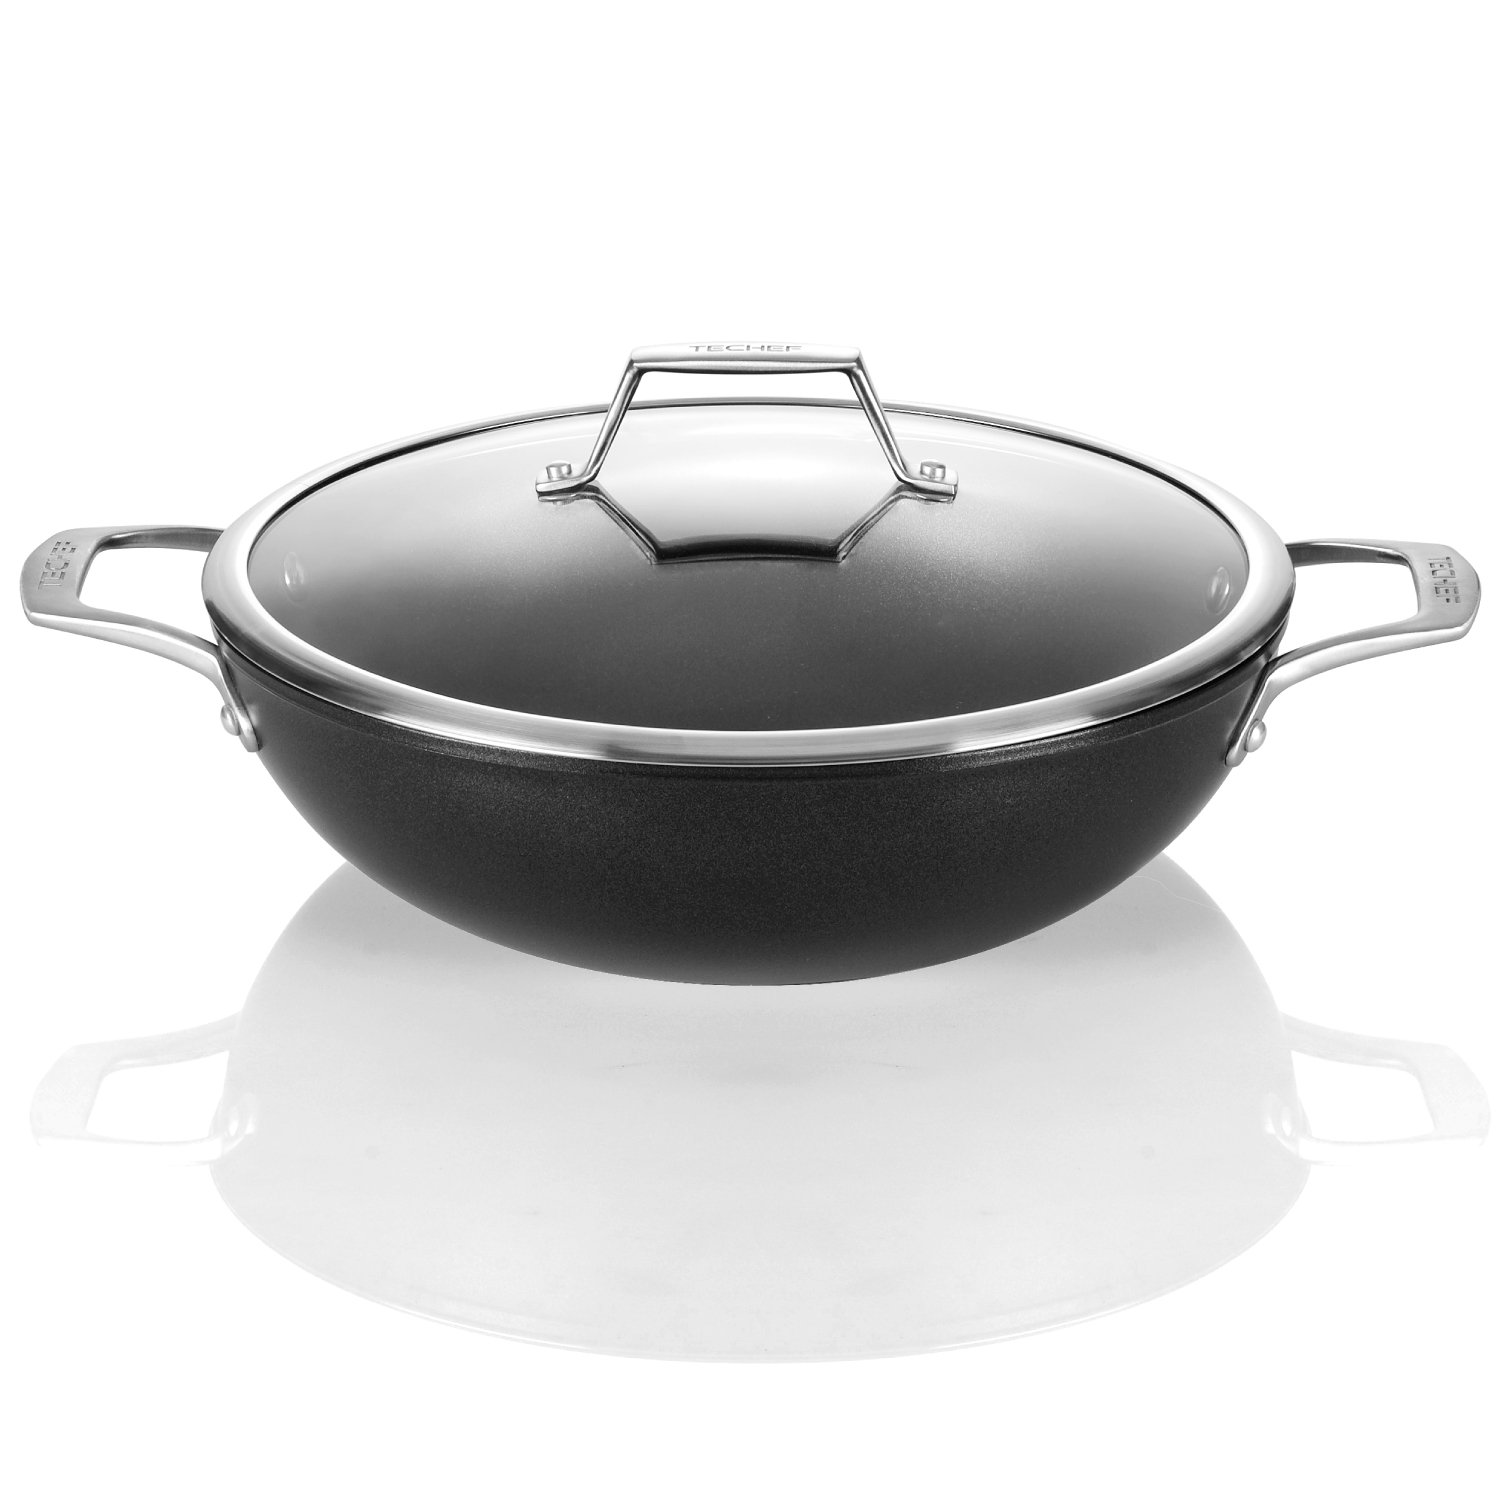 TECHEF - Onyx Collection, 12-Inch Wok/Stir Fry Pan with Glass Lid, coated with New Teflon Platinum Non-Stick Coating (PFOA Free) OXWL